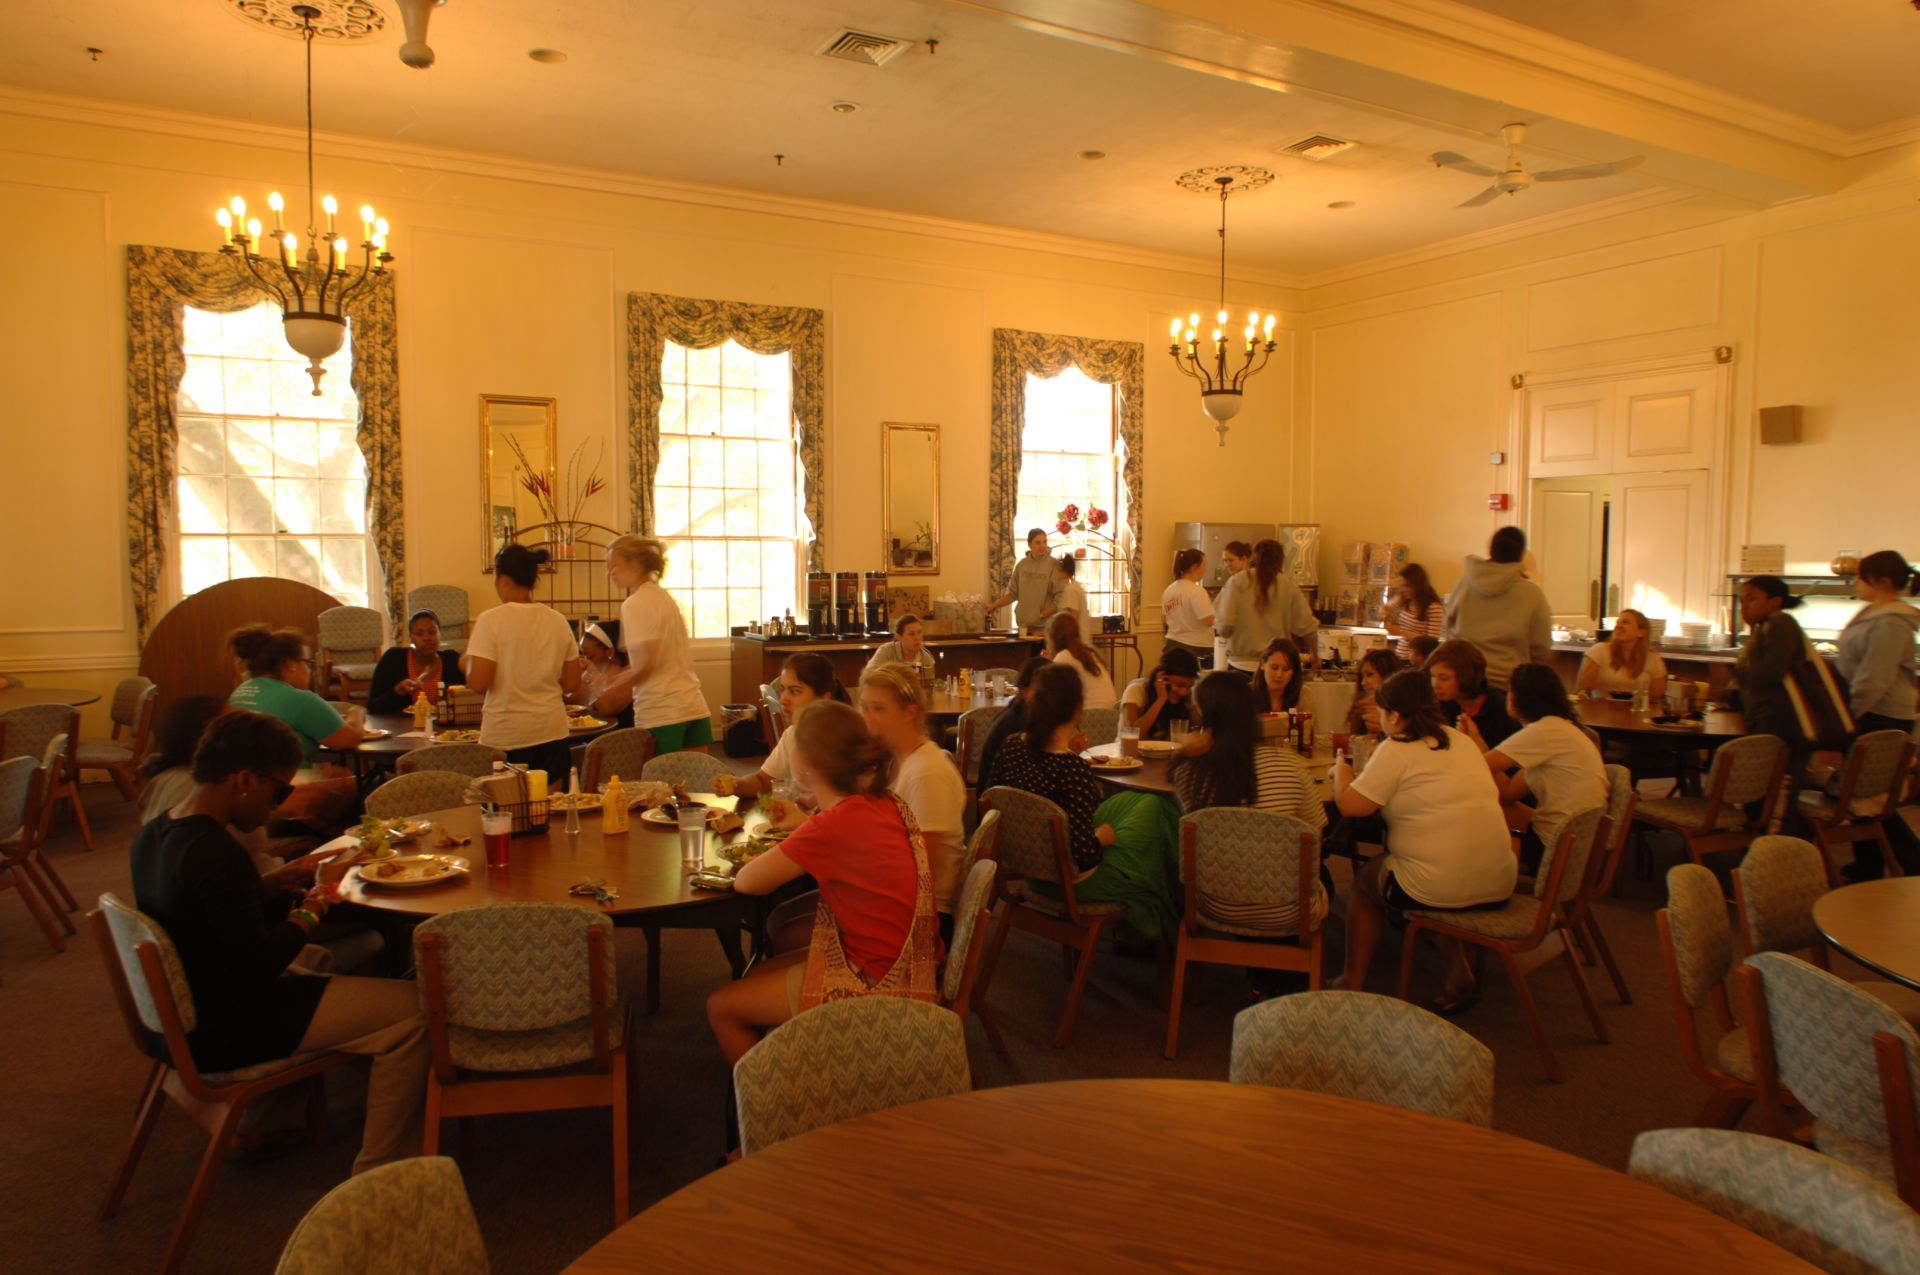 The Dining Hall in Main